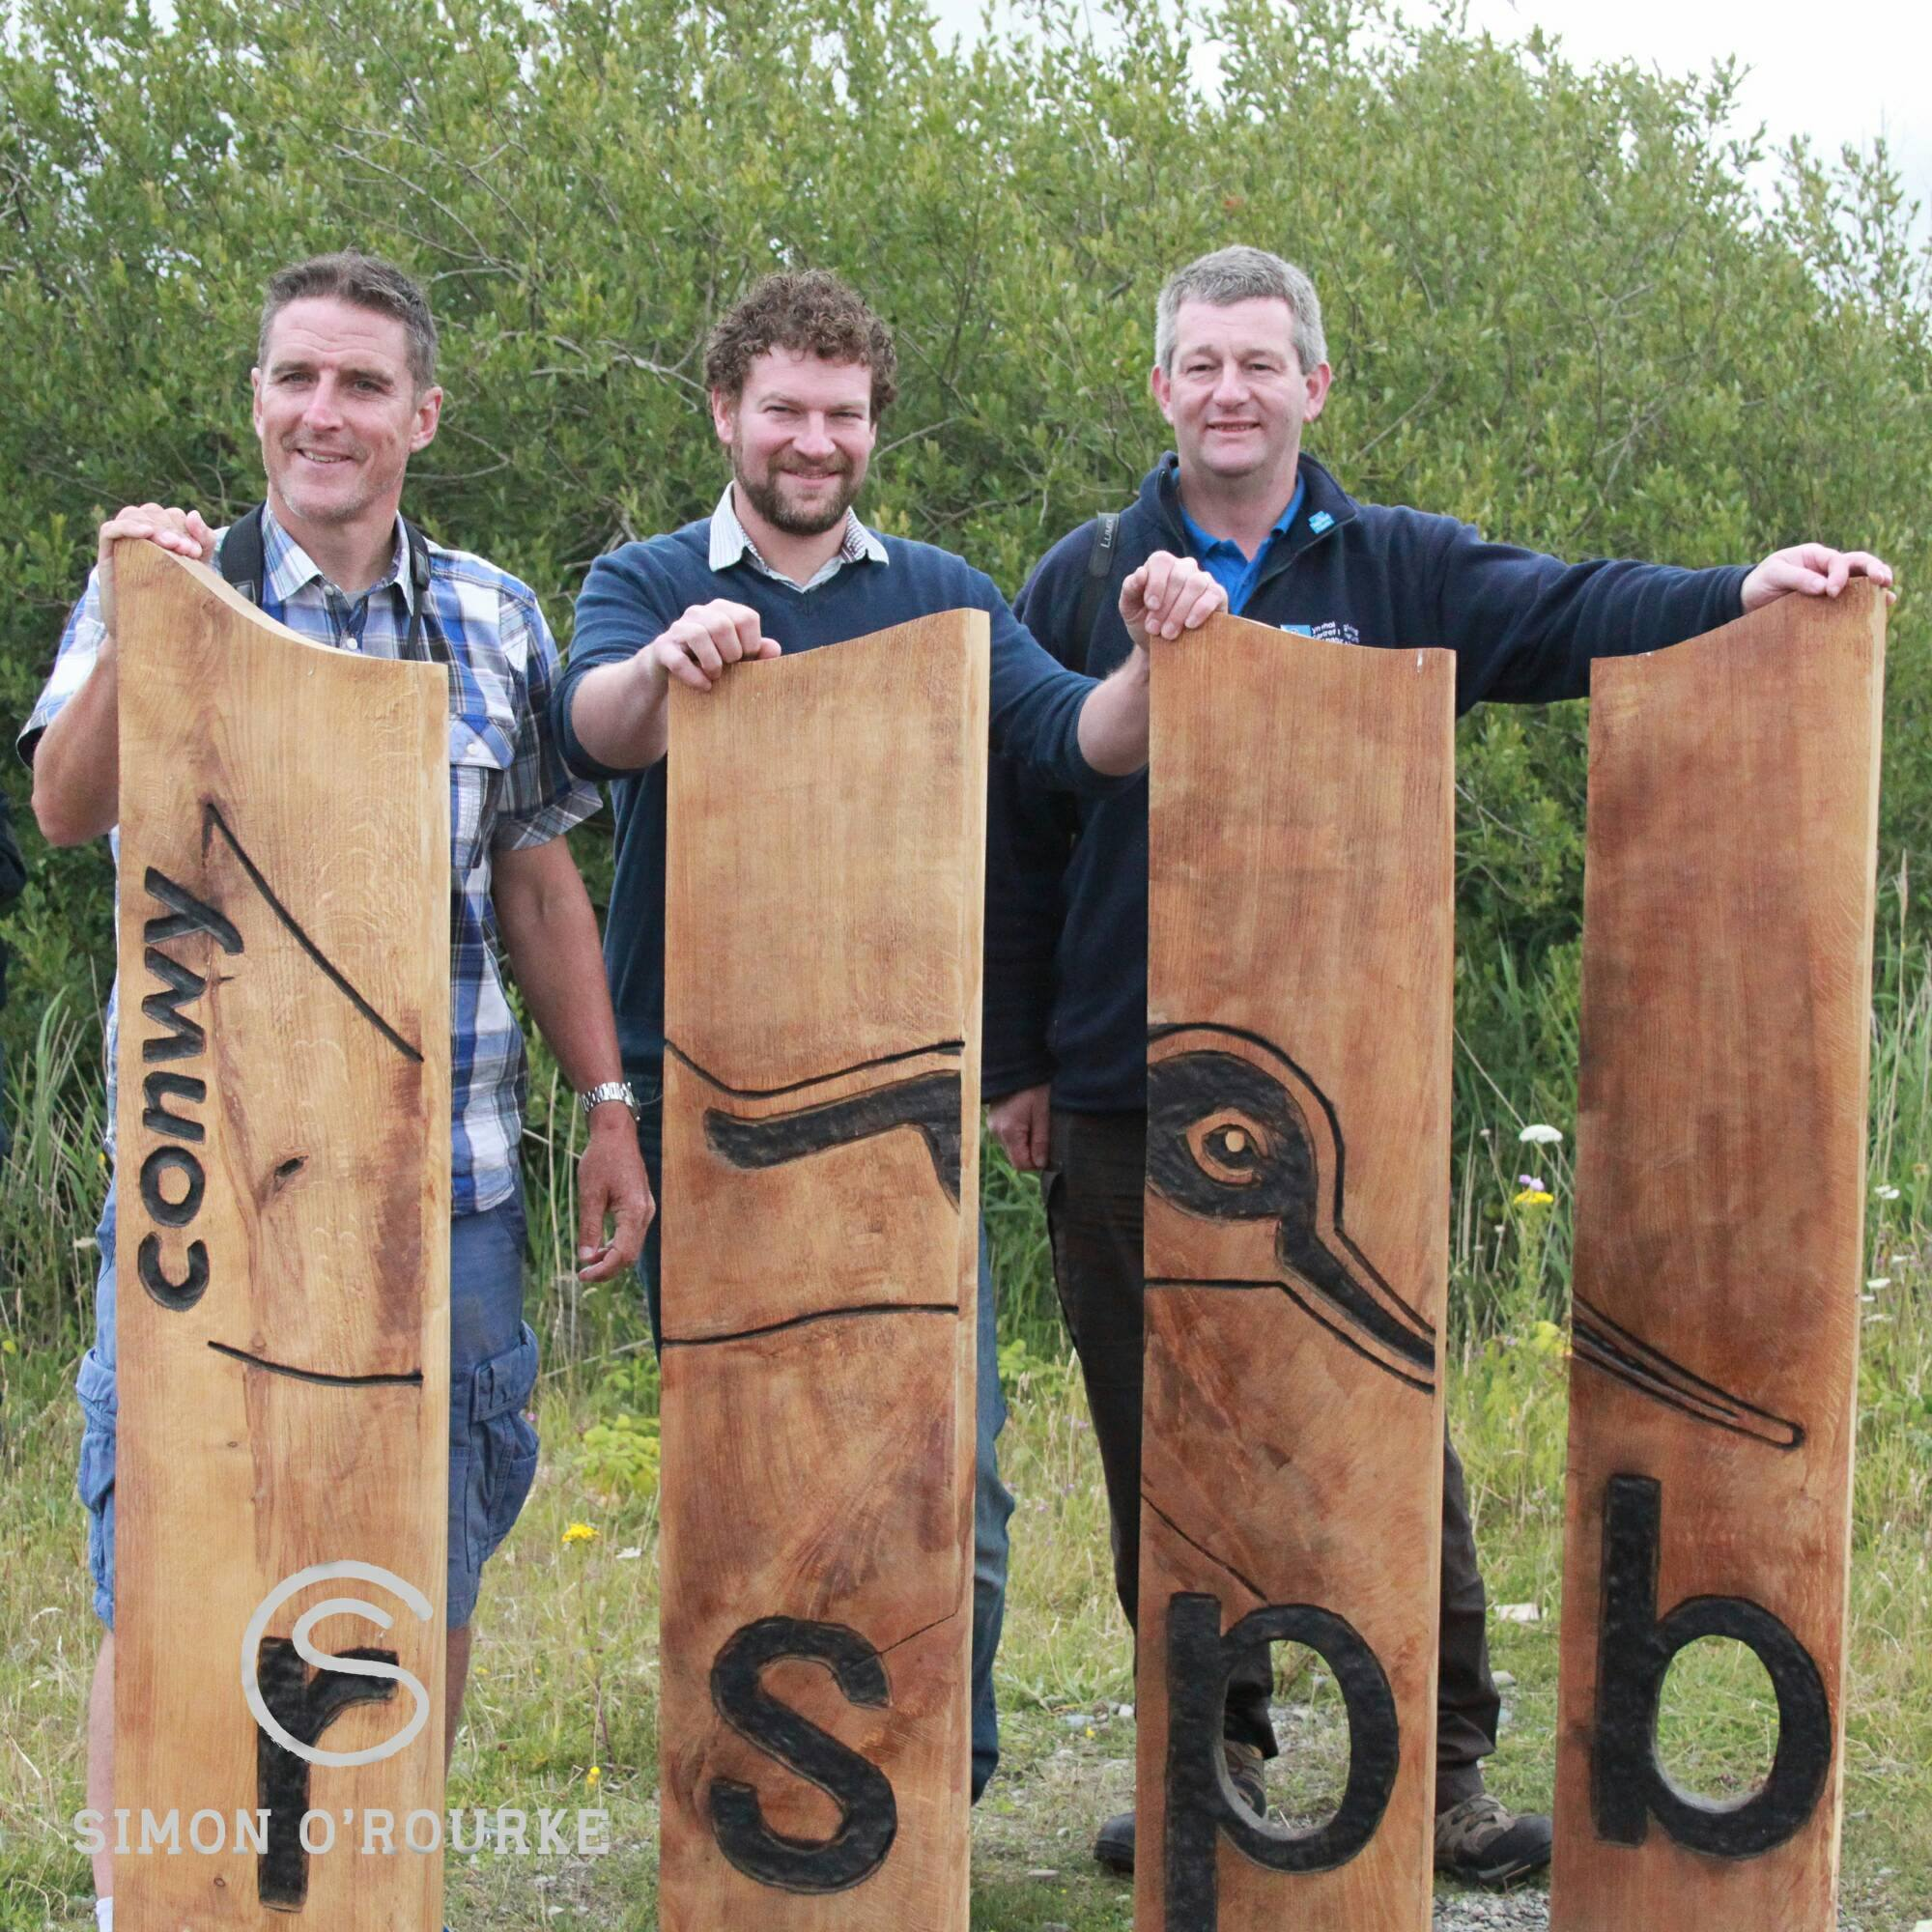 Wood logos and emblems by SImon O'Rourke: RSPB COnway. Four planks of wood stand around 4' tall with a bird and RSBP burned onto them. Three men stand behind the sign.